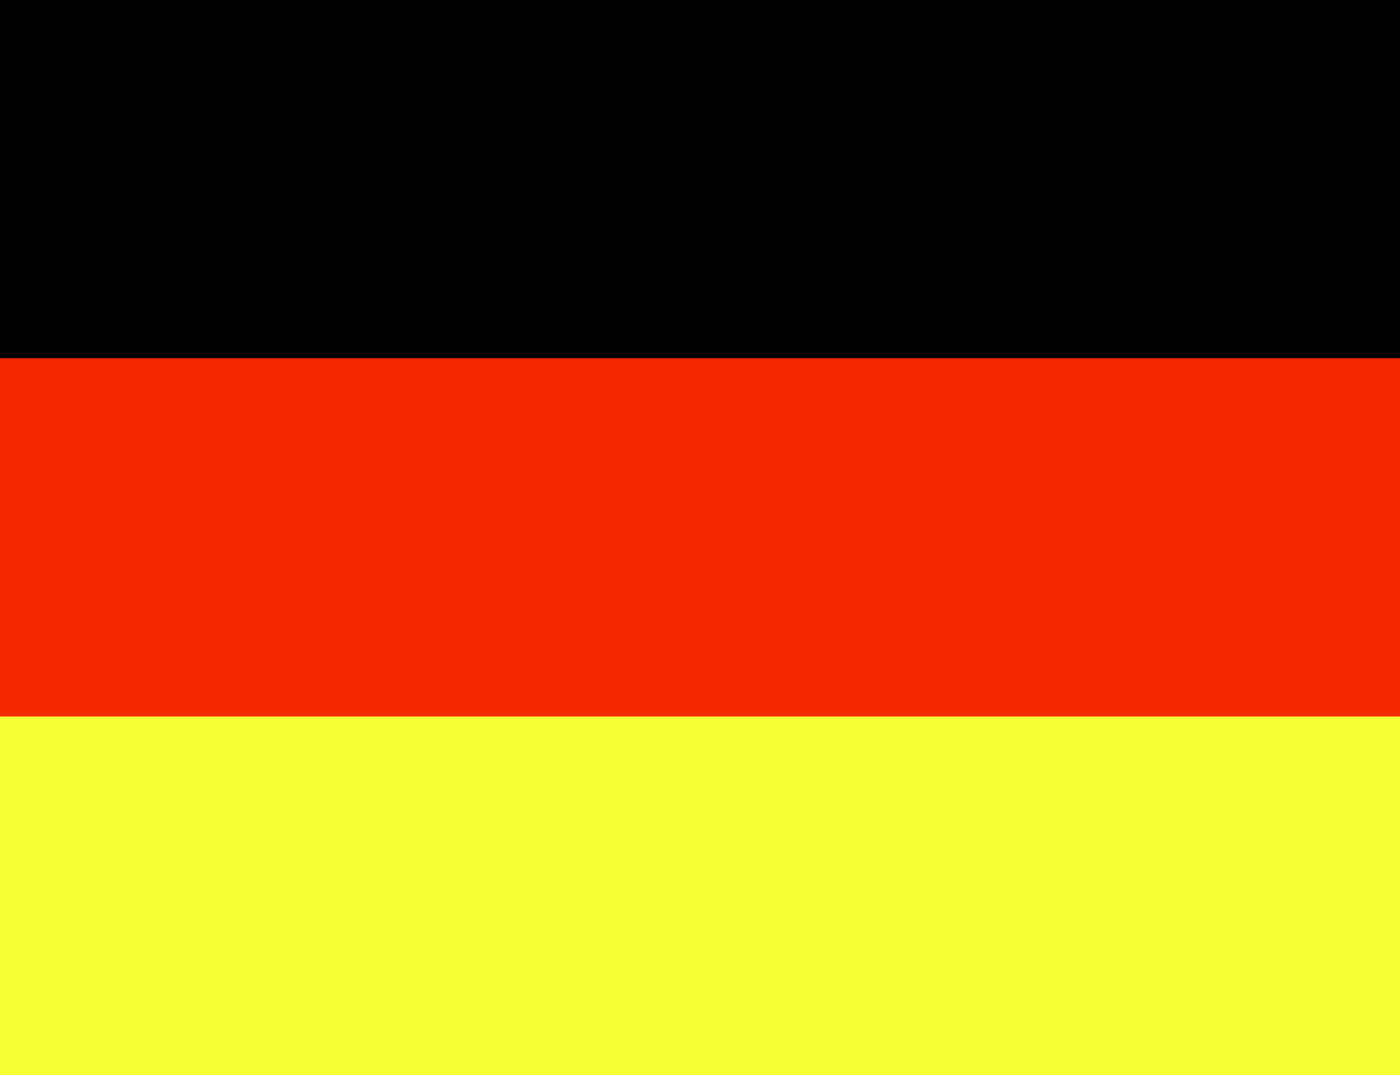 deutschland flag wallpaper - photo #5